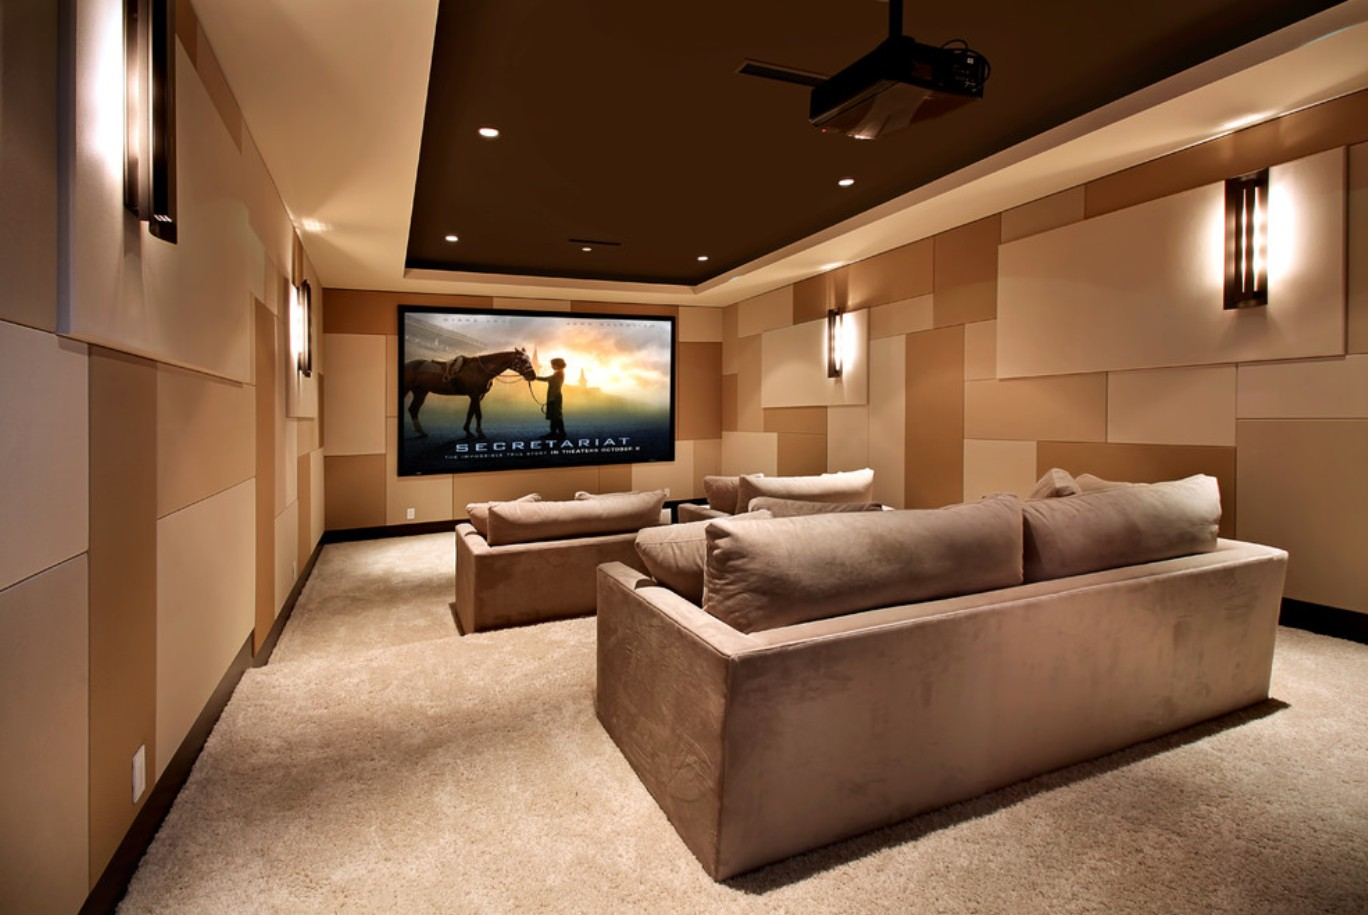 home theater as addition to large modern interior small design ideas home theater as addition to large modern interior upholstered furniture in the same color tone